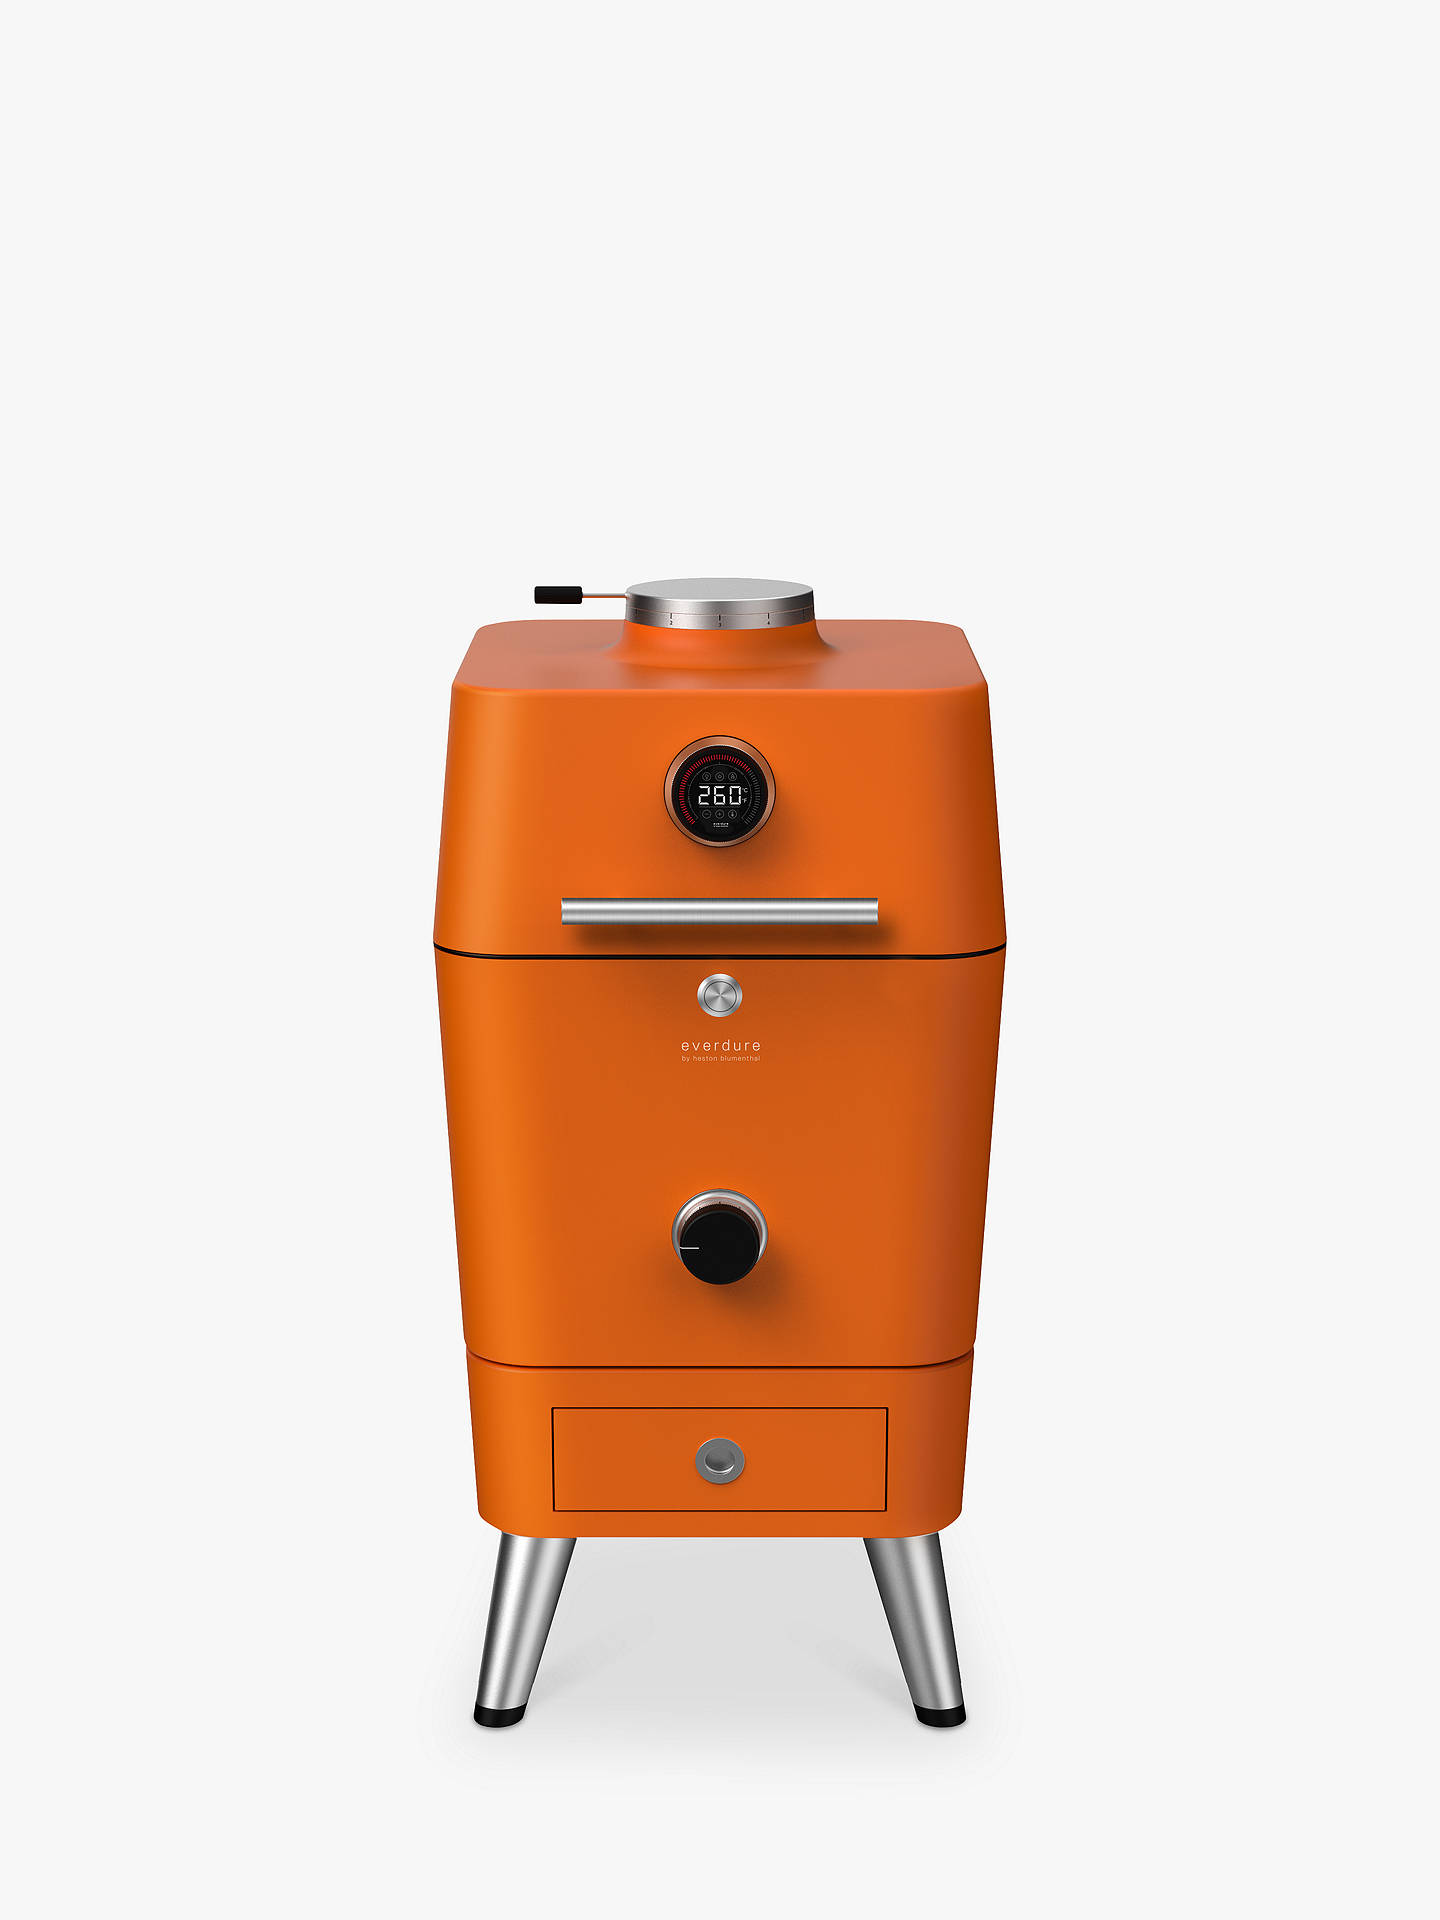 Buy Everdure By Heston Blumenthal 4K Outdoor Electric Ignition Charcoal BBQ Cooker, Orange Online at johnlewis.com